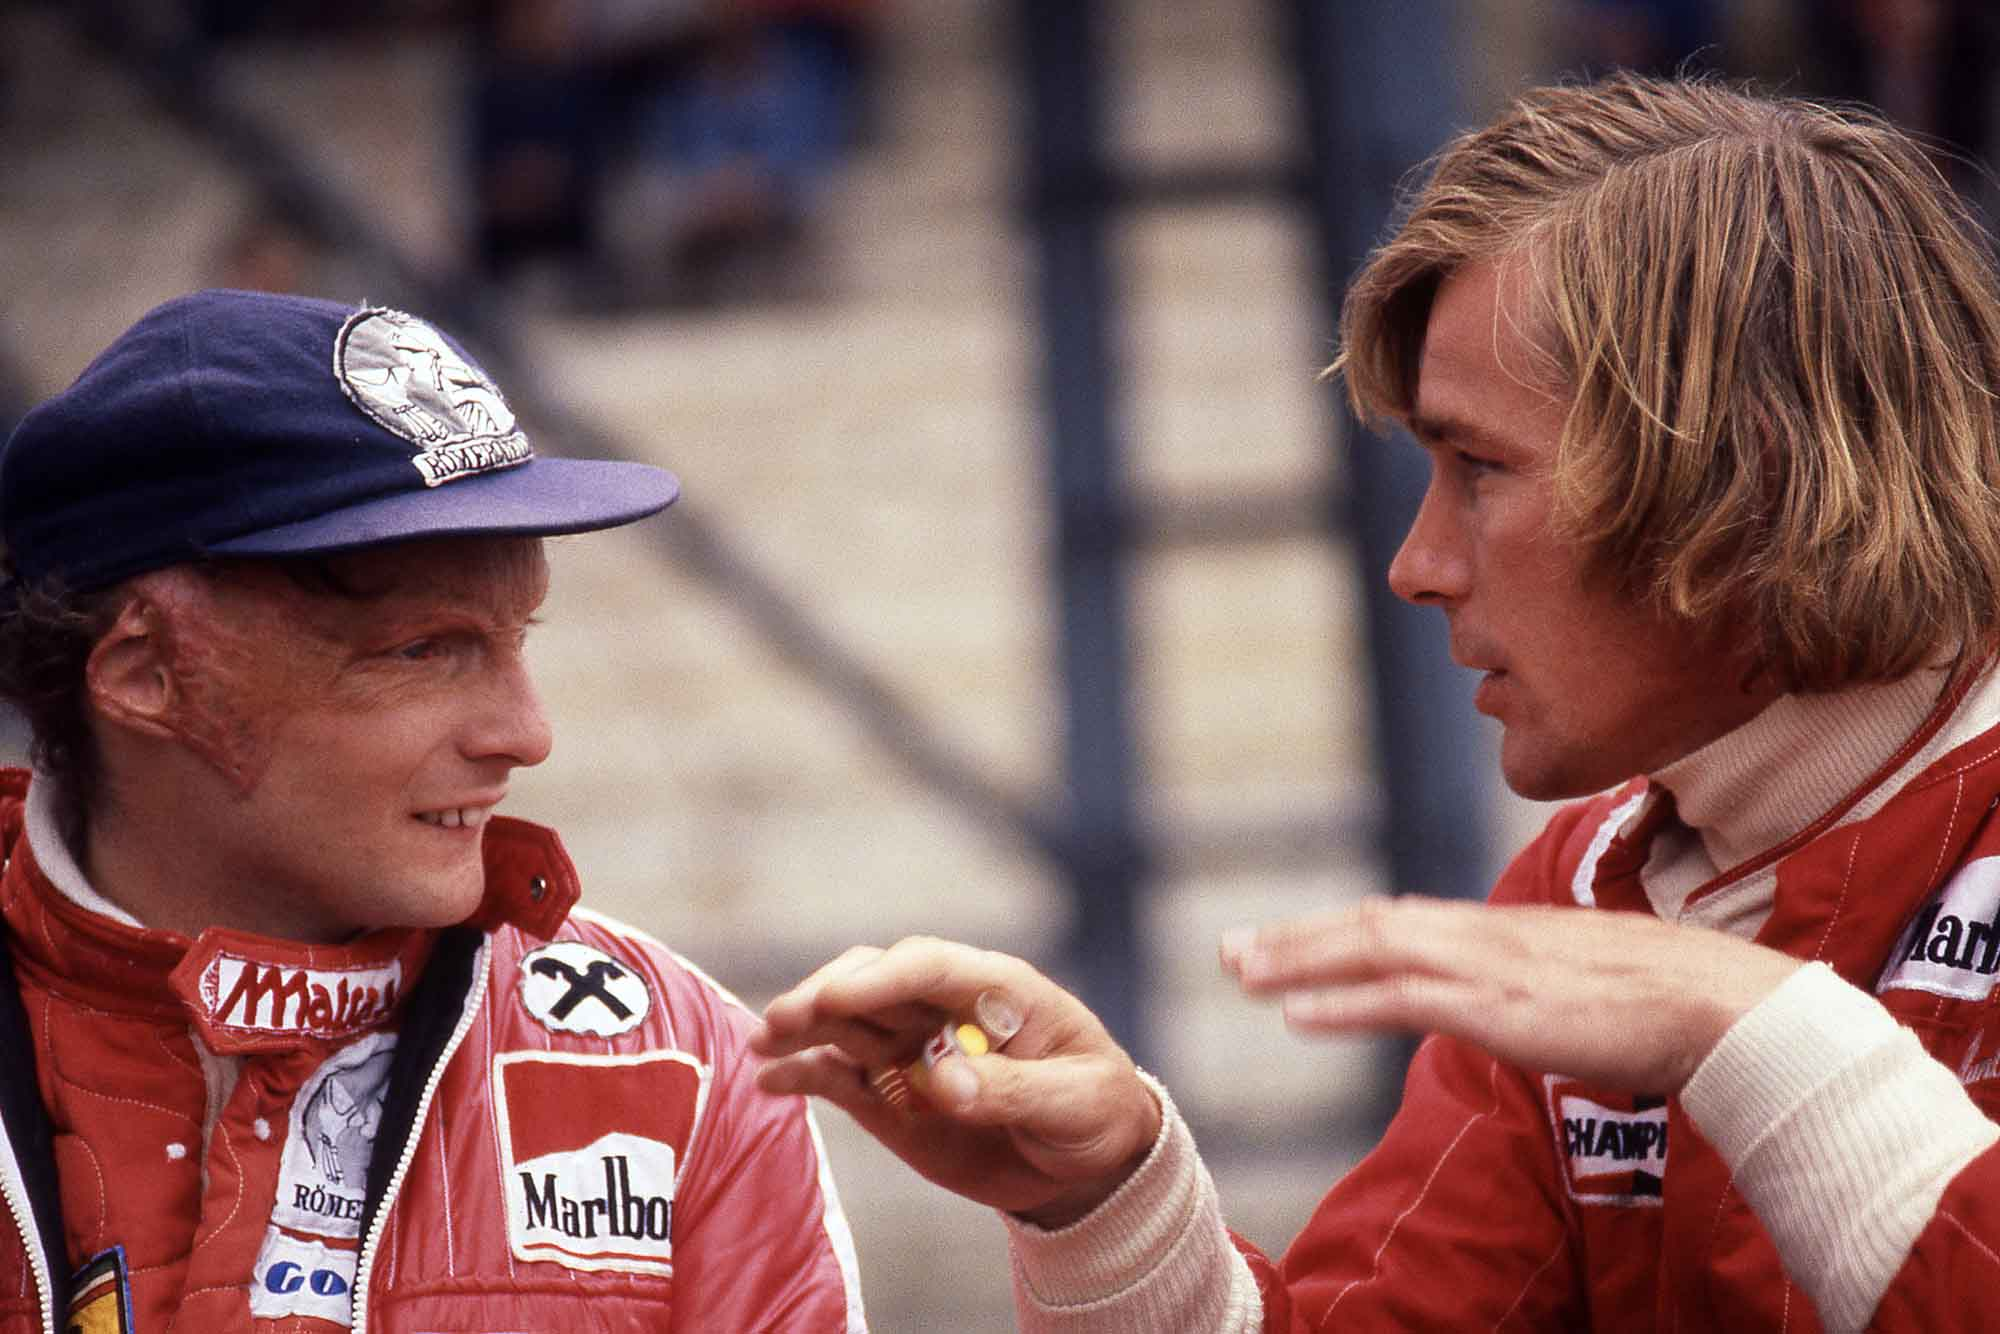 Niki Lauda of Ferrari confers with James Hunt of McLaren at 1976 Belgium Grand Prix